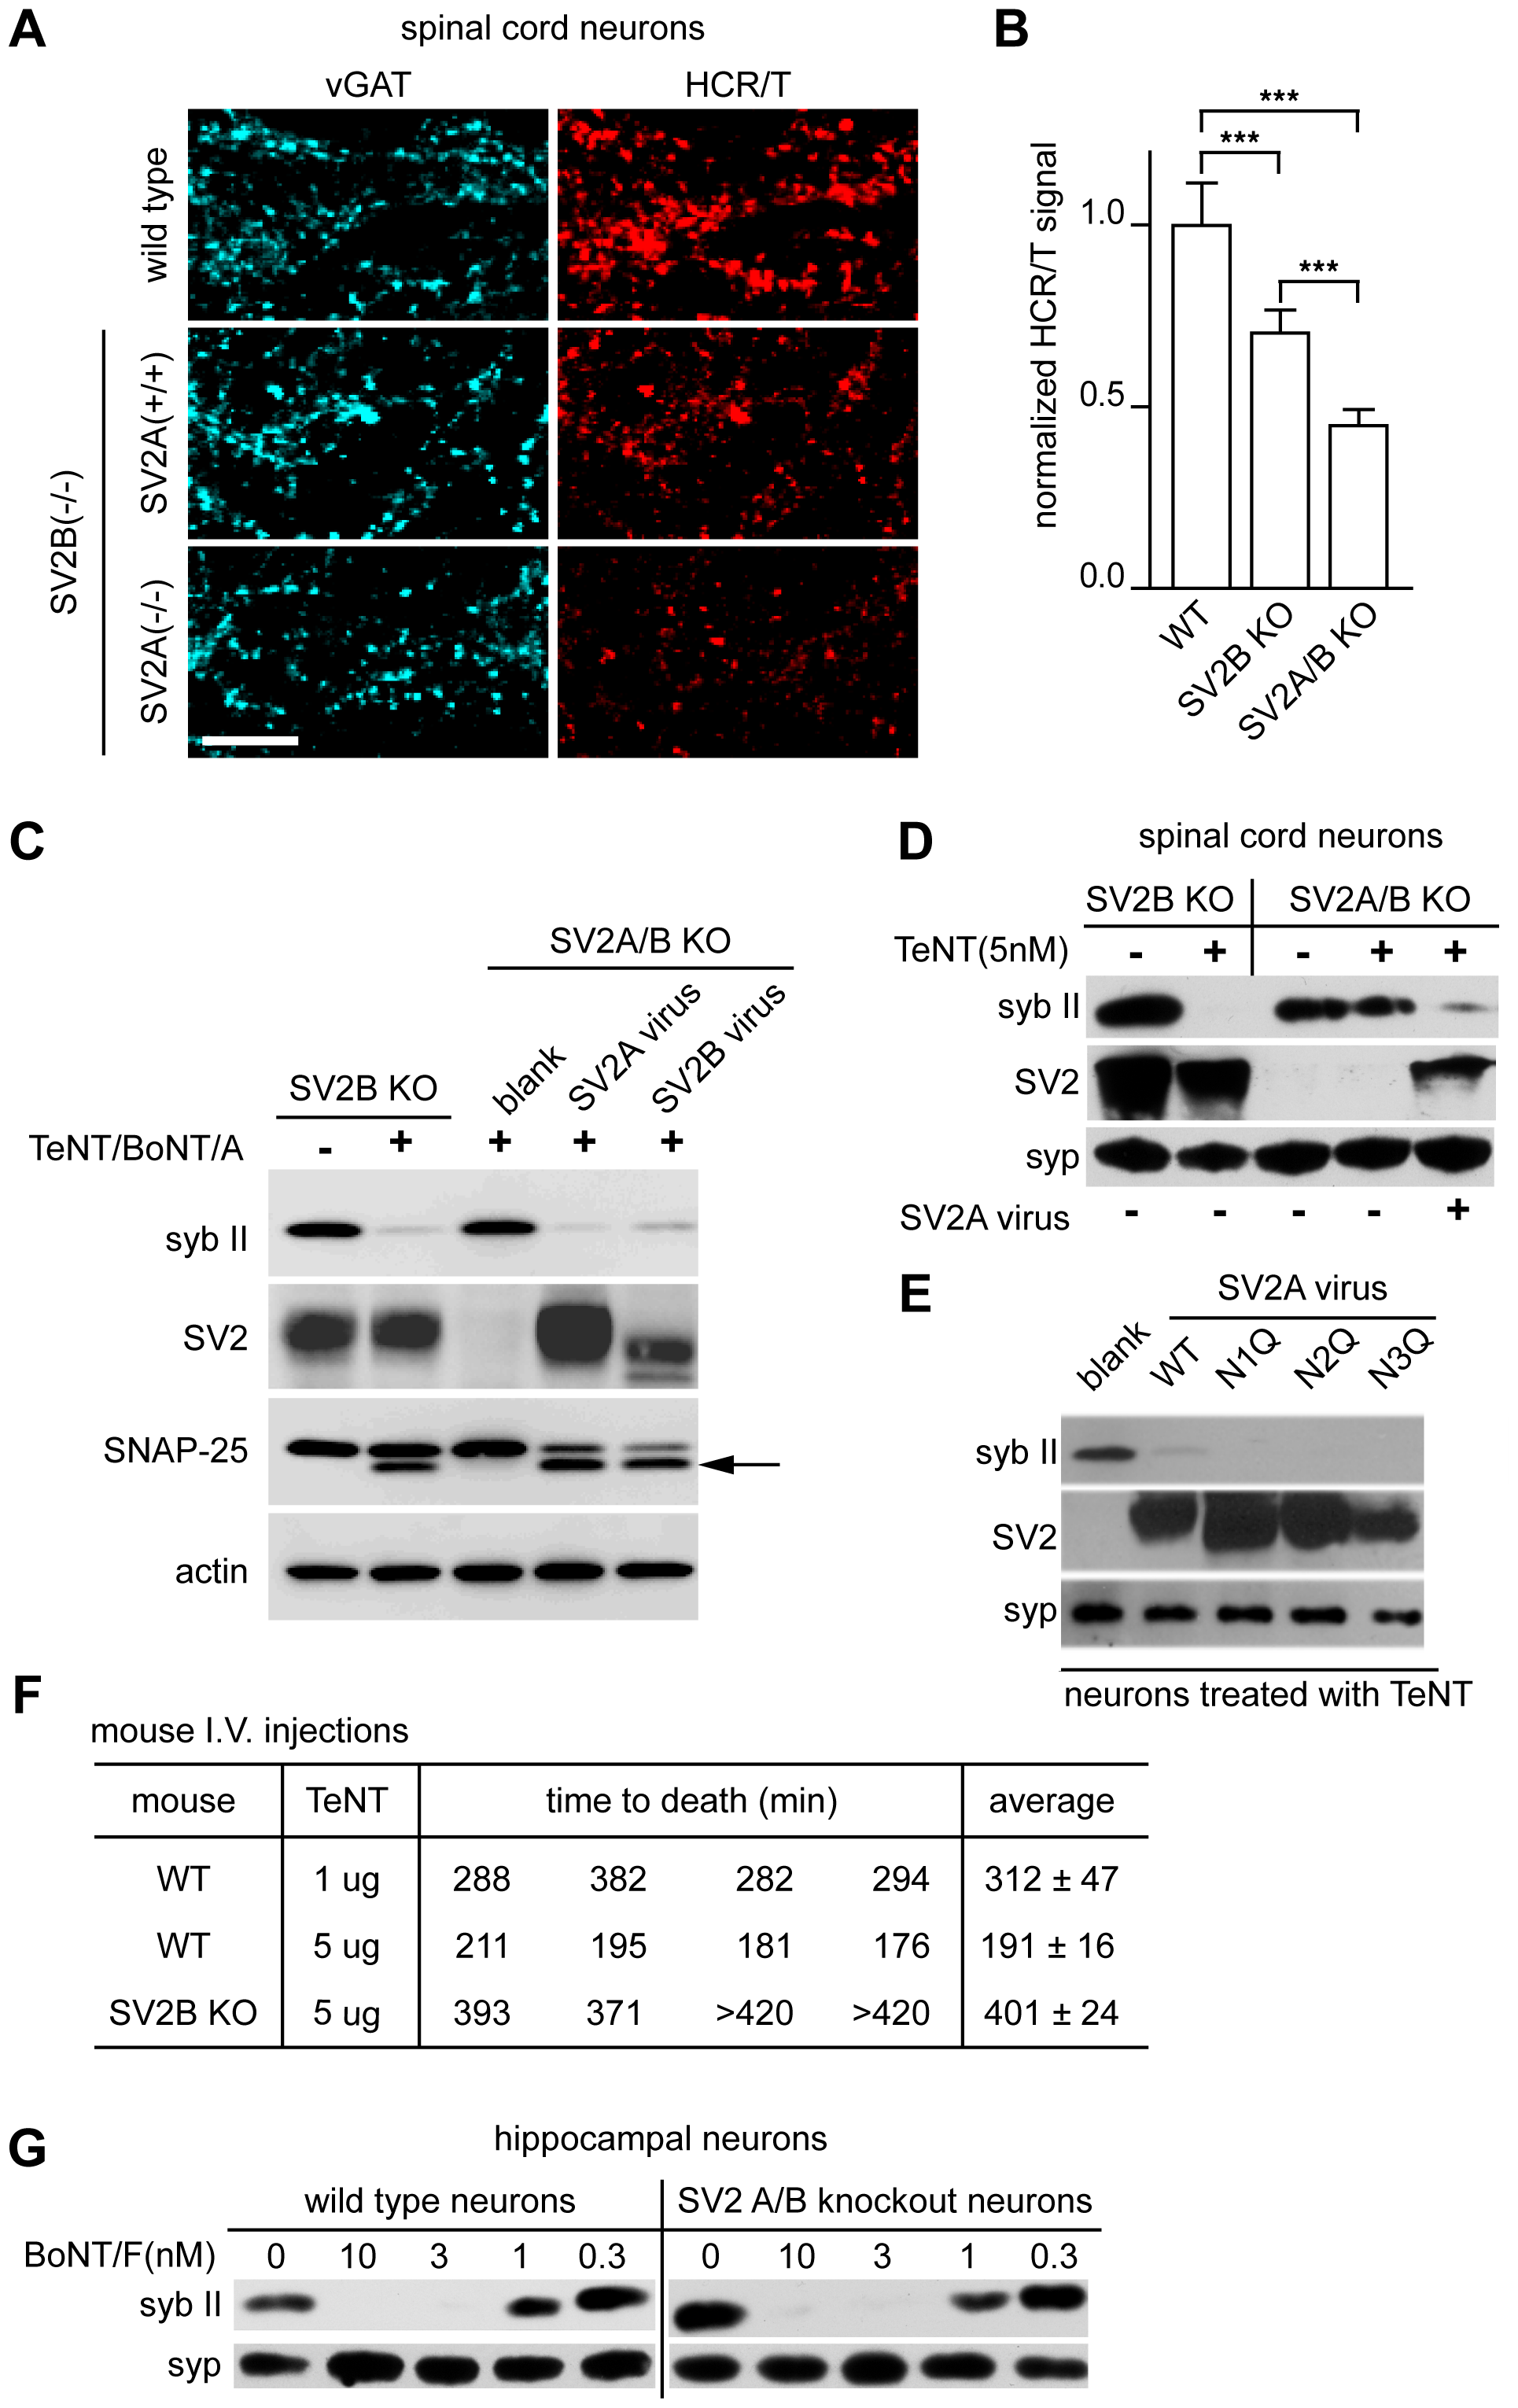 SV2A/B KO neurons are resistant to TeNT.